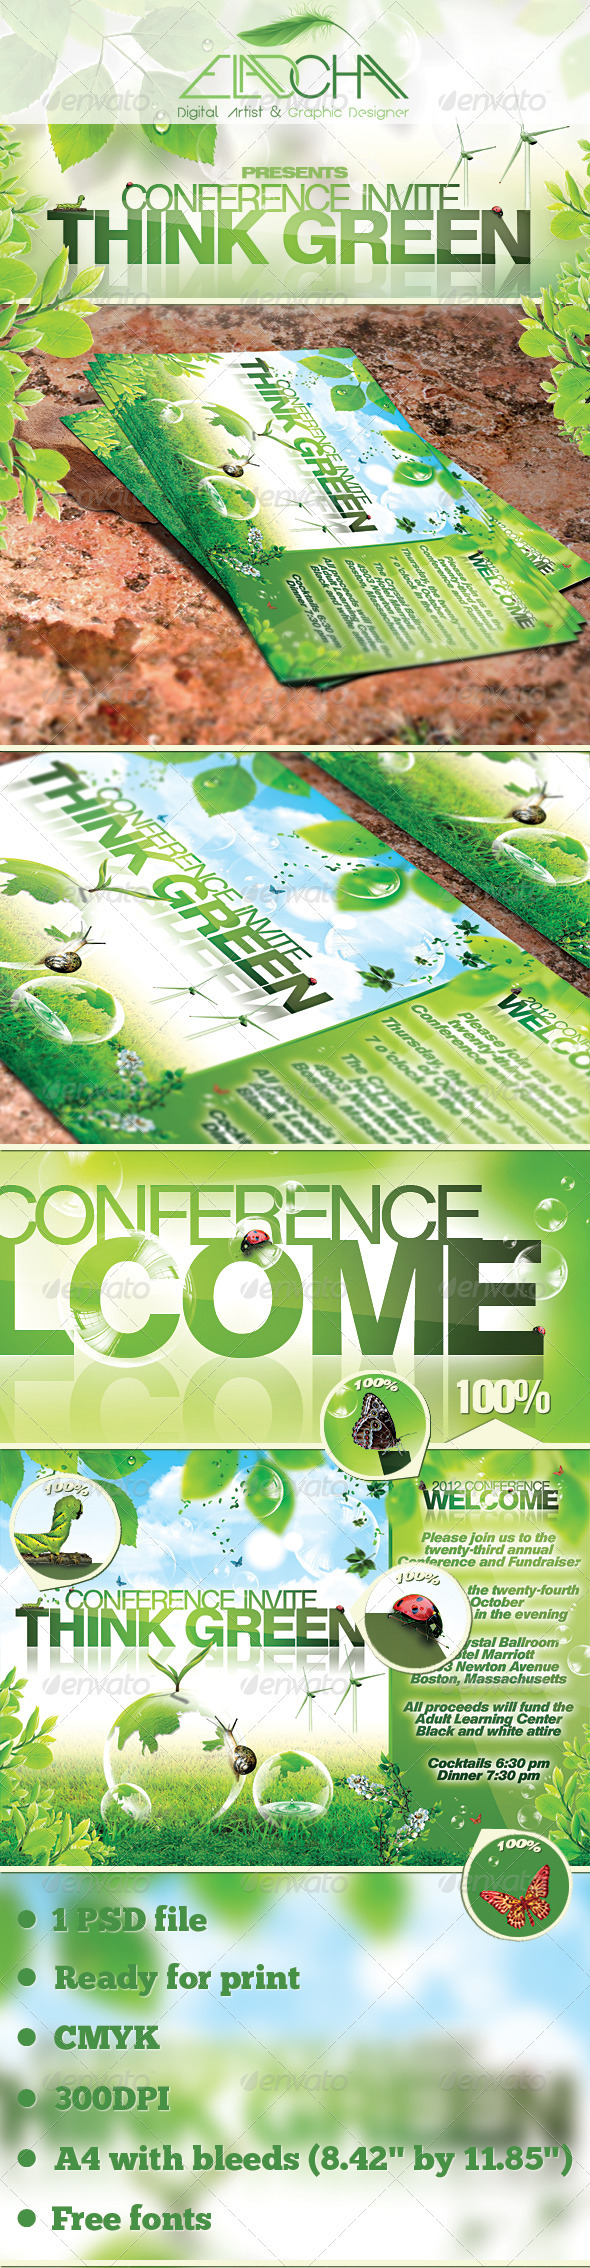 Green Promotion Flyer Template - Corporate Flyers